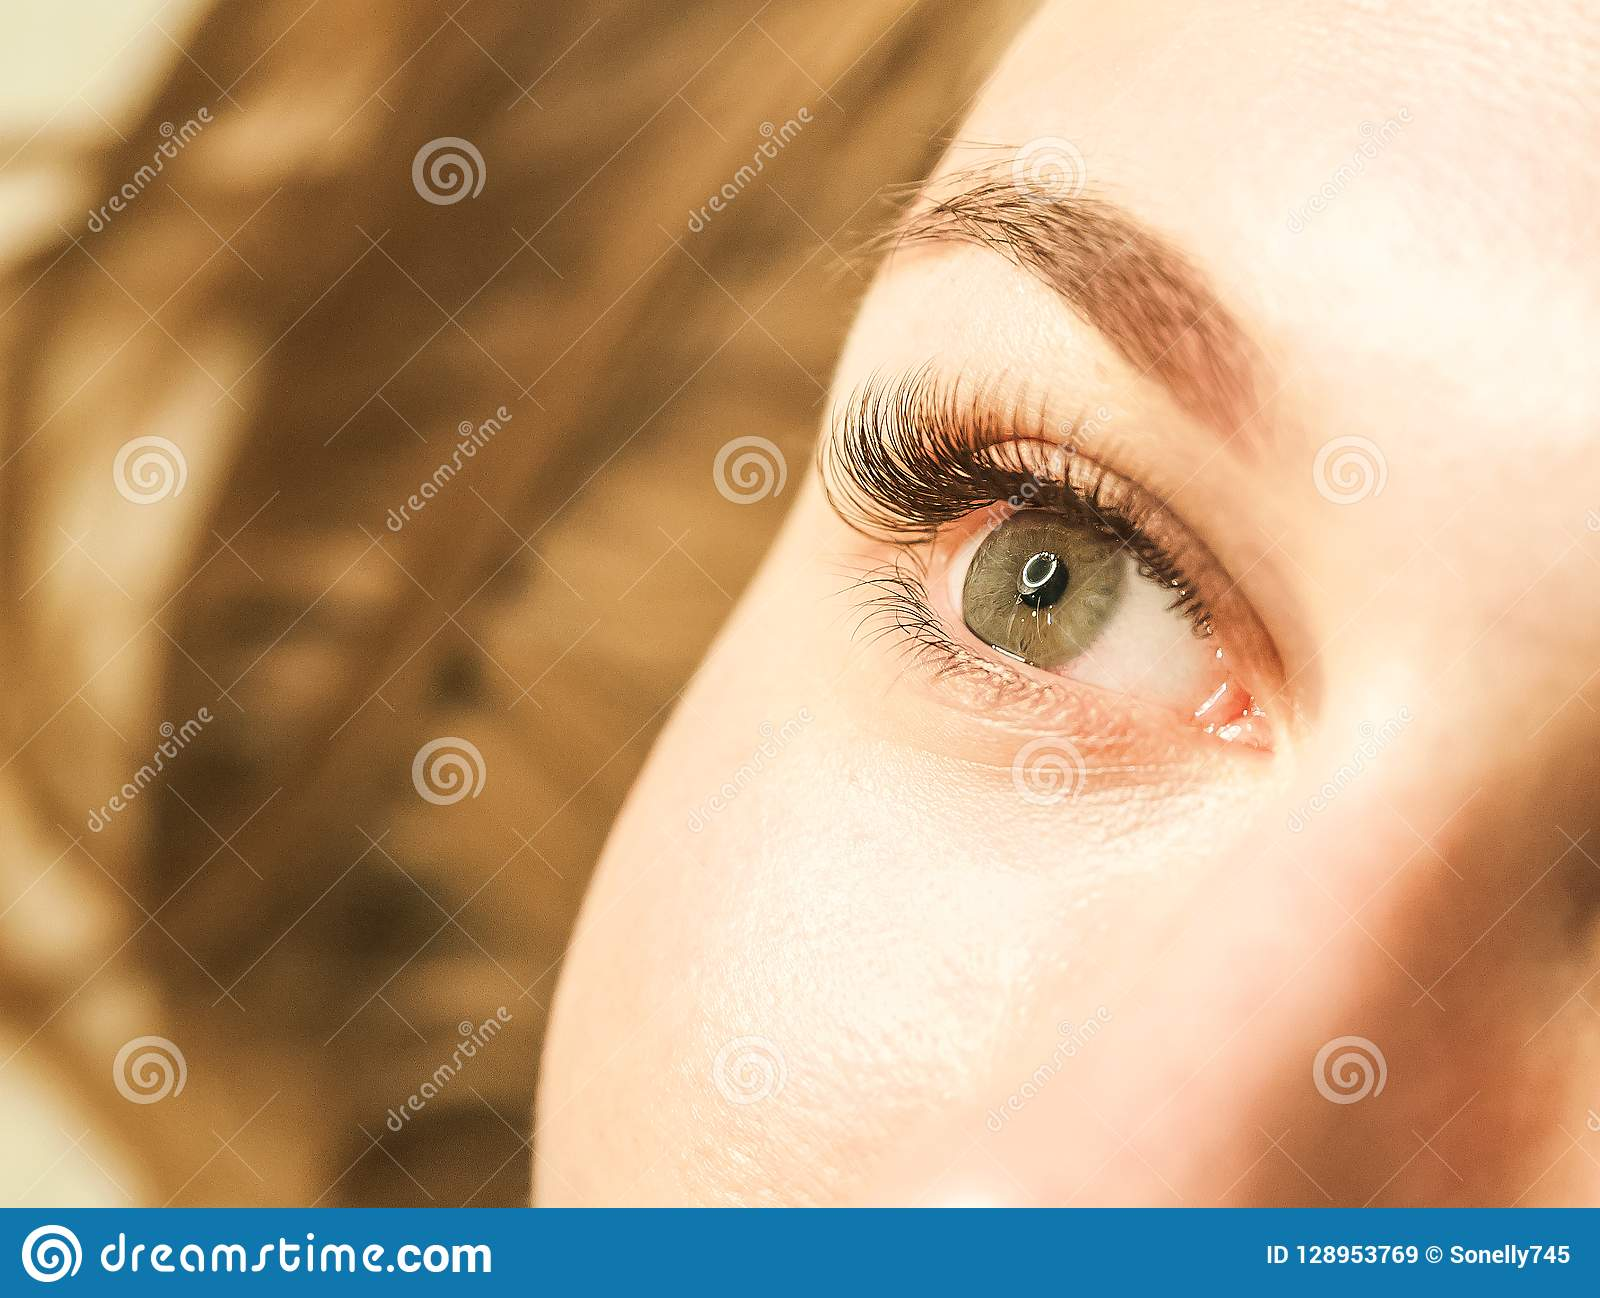 Close-up of a girl`s eye with lashes. The concept of caring for the eyes, eyelash extensions in the salon.